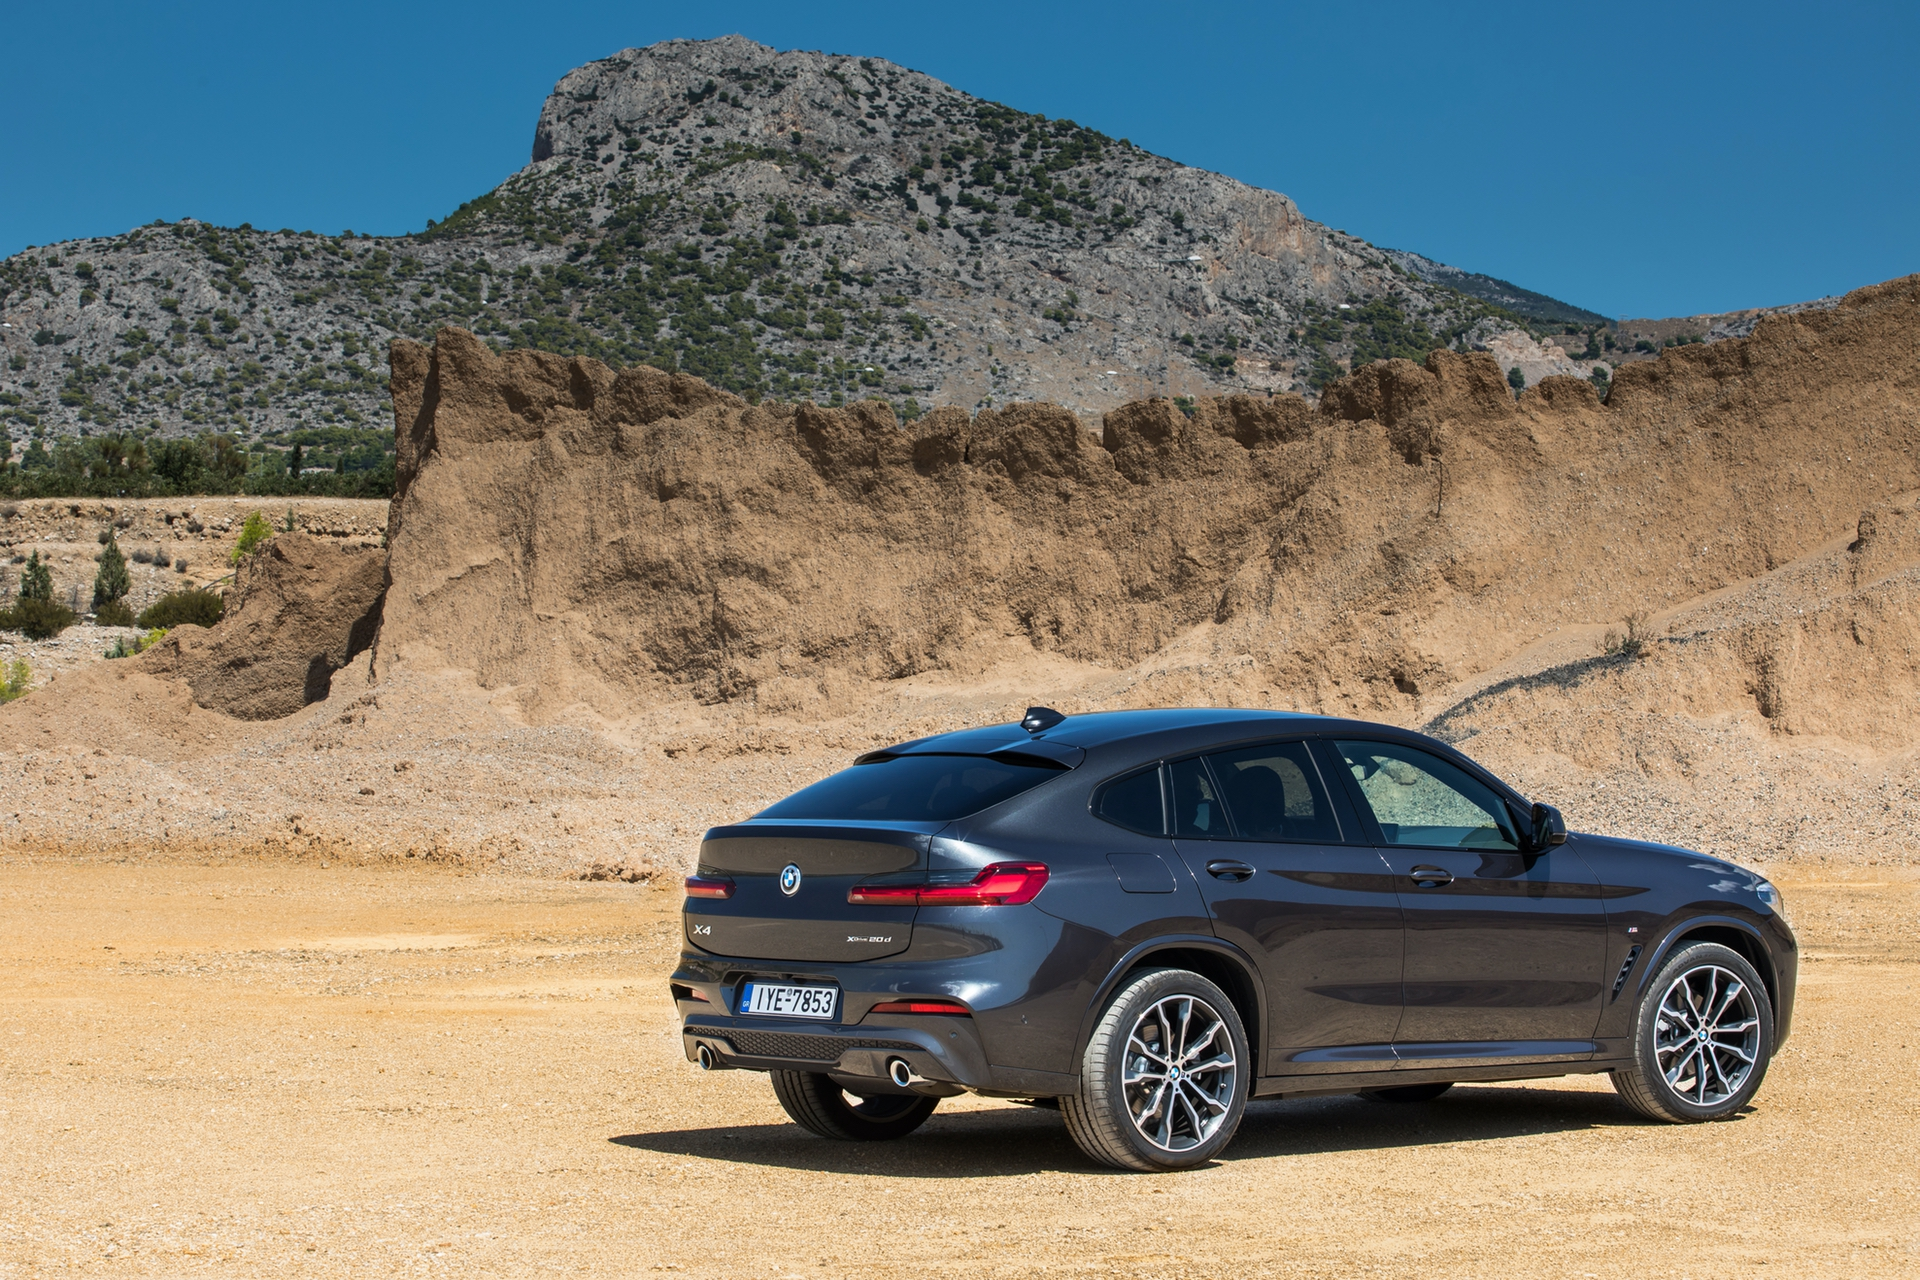 BMW_X4_greek_presskit_0062